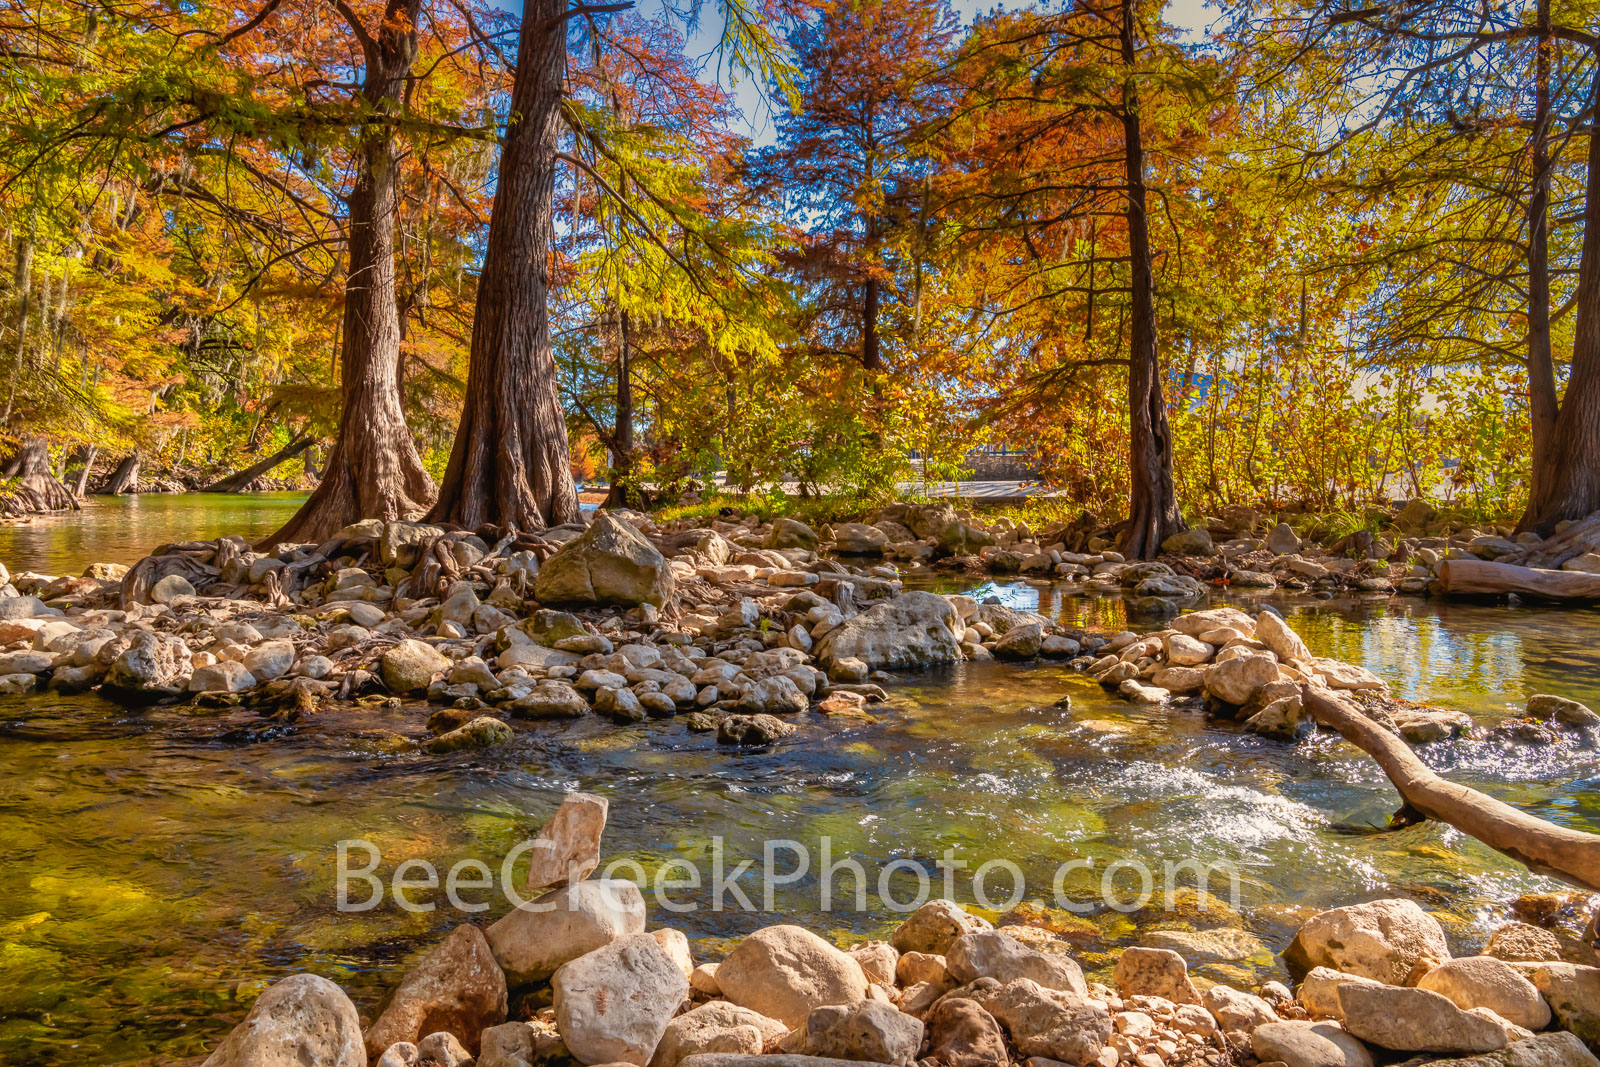 Texas Scenic Fall River View - Fall colors are abundant along the guadalupe river as the trees have turned different shades of...